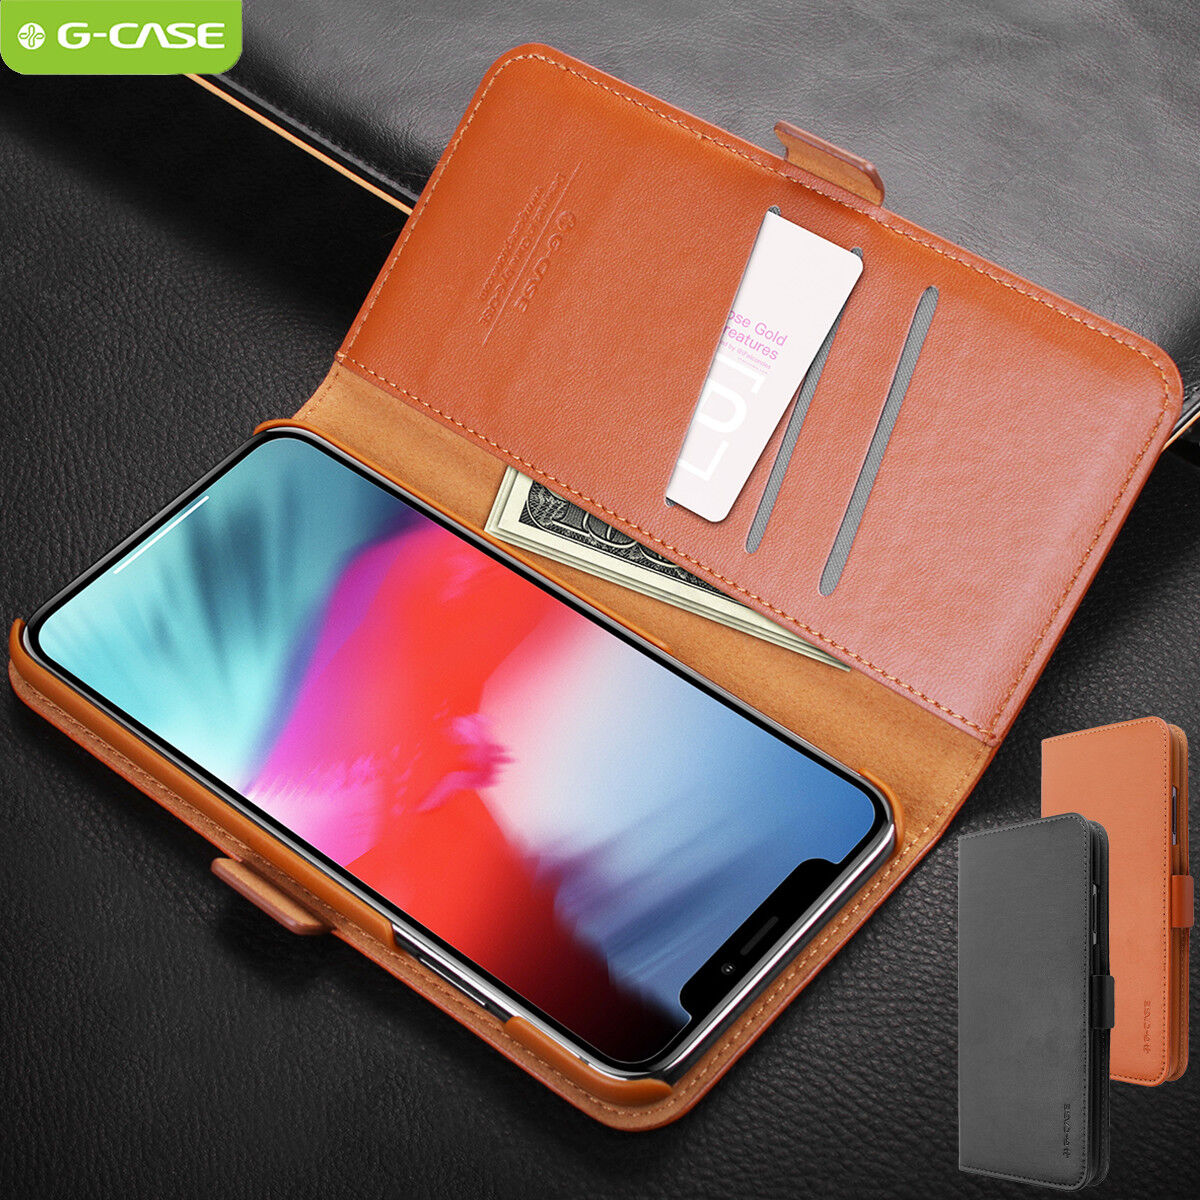 Flip Case for iPhone 11 Pro Leather Cover Business Gifts Wallet with Extra Waterproof Underwater Case